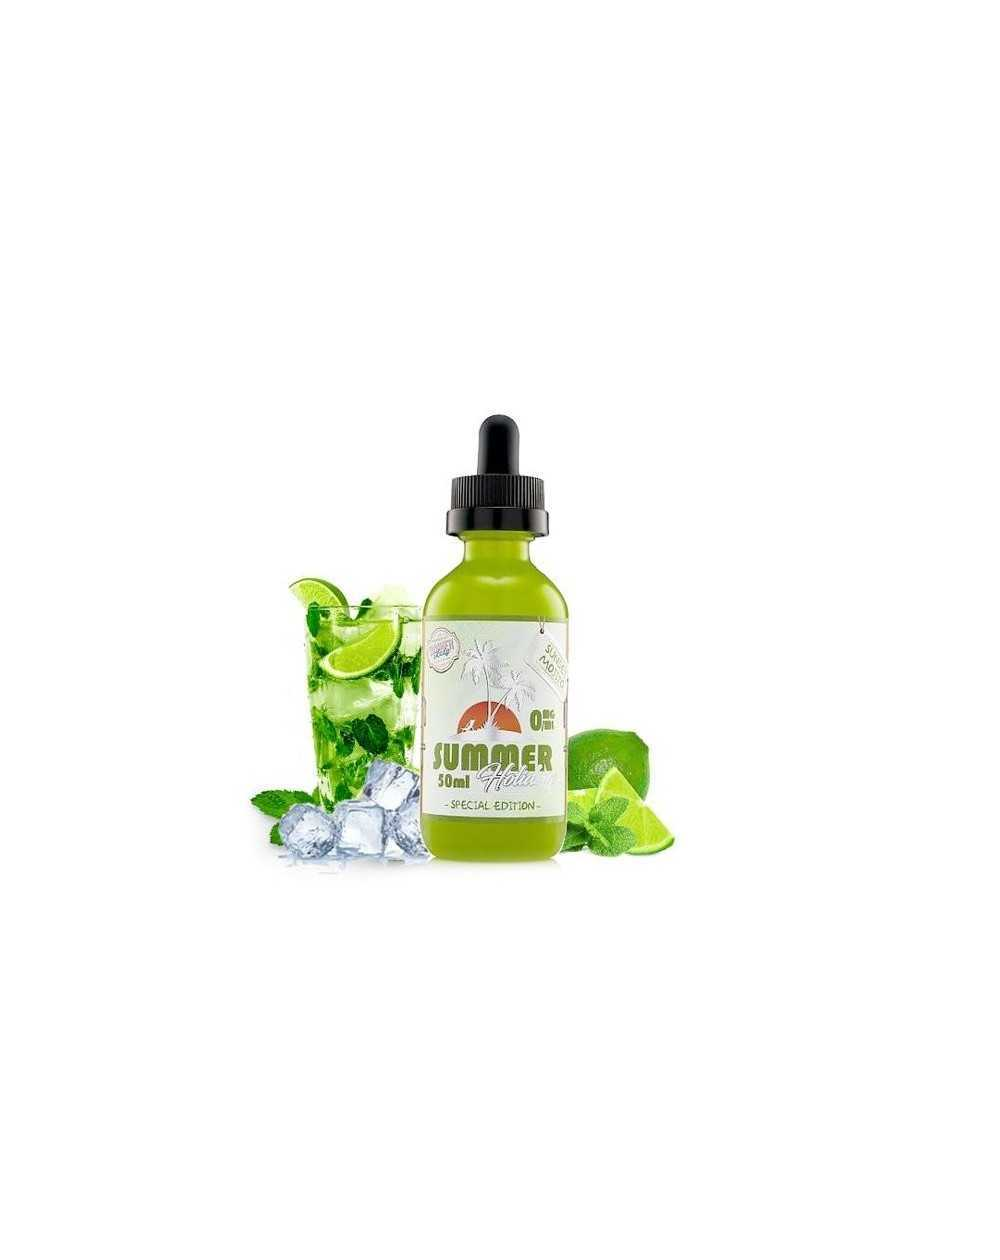 Sunset Mojito 50ml - Dinner Lady Summer Holidays-1